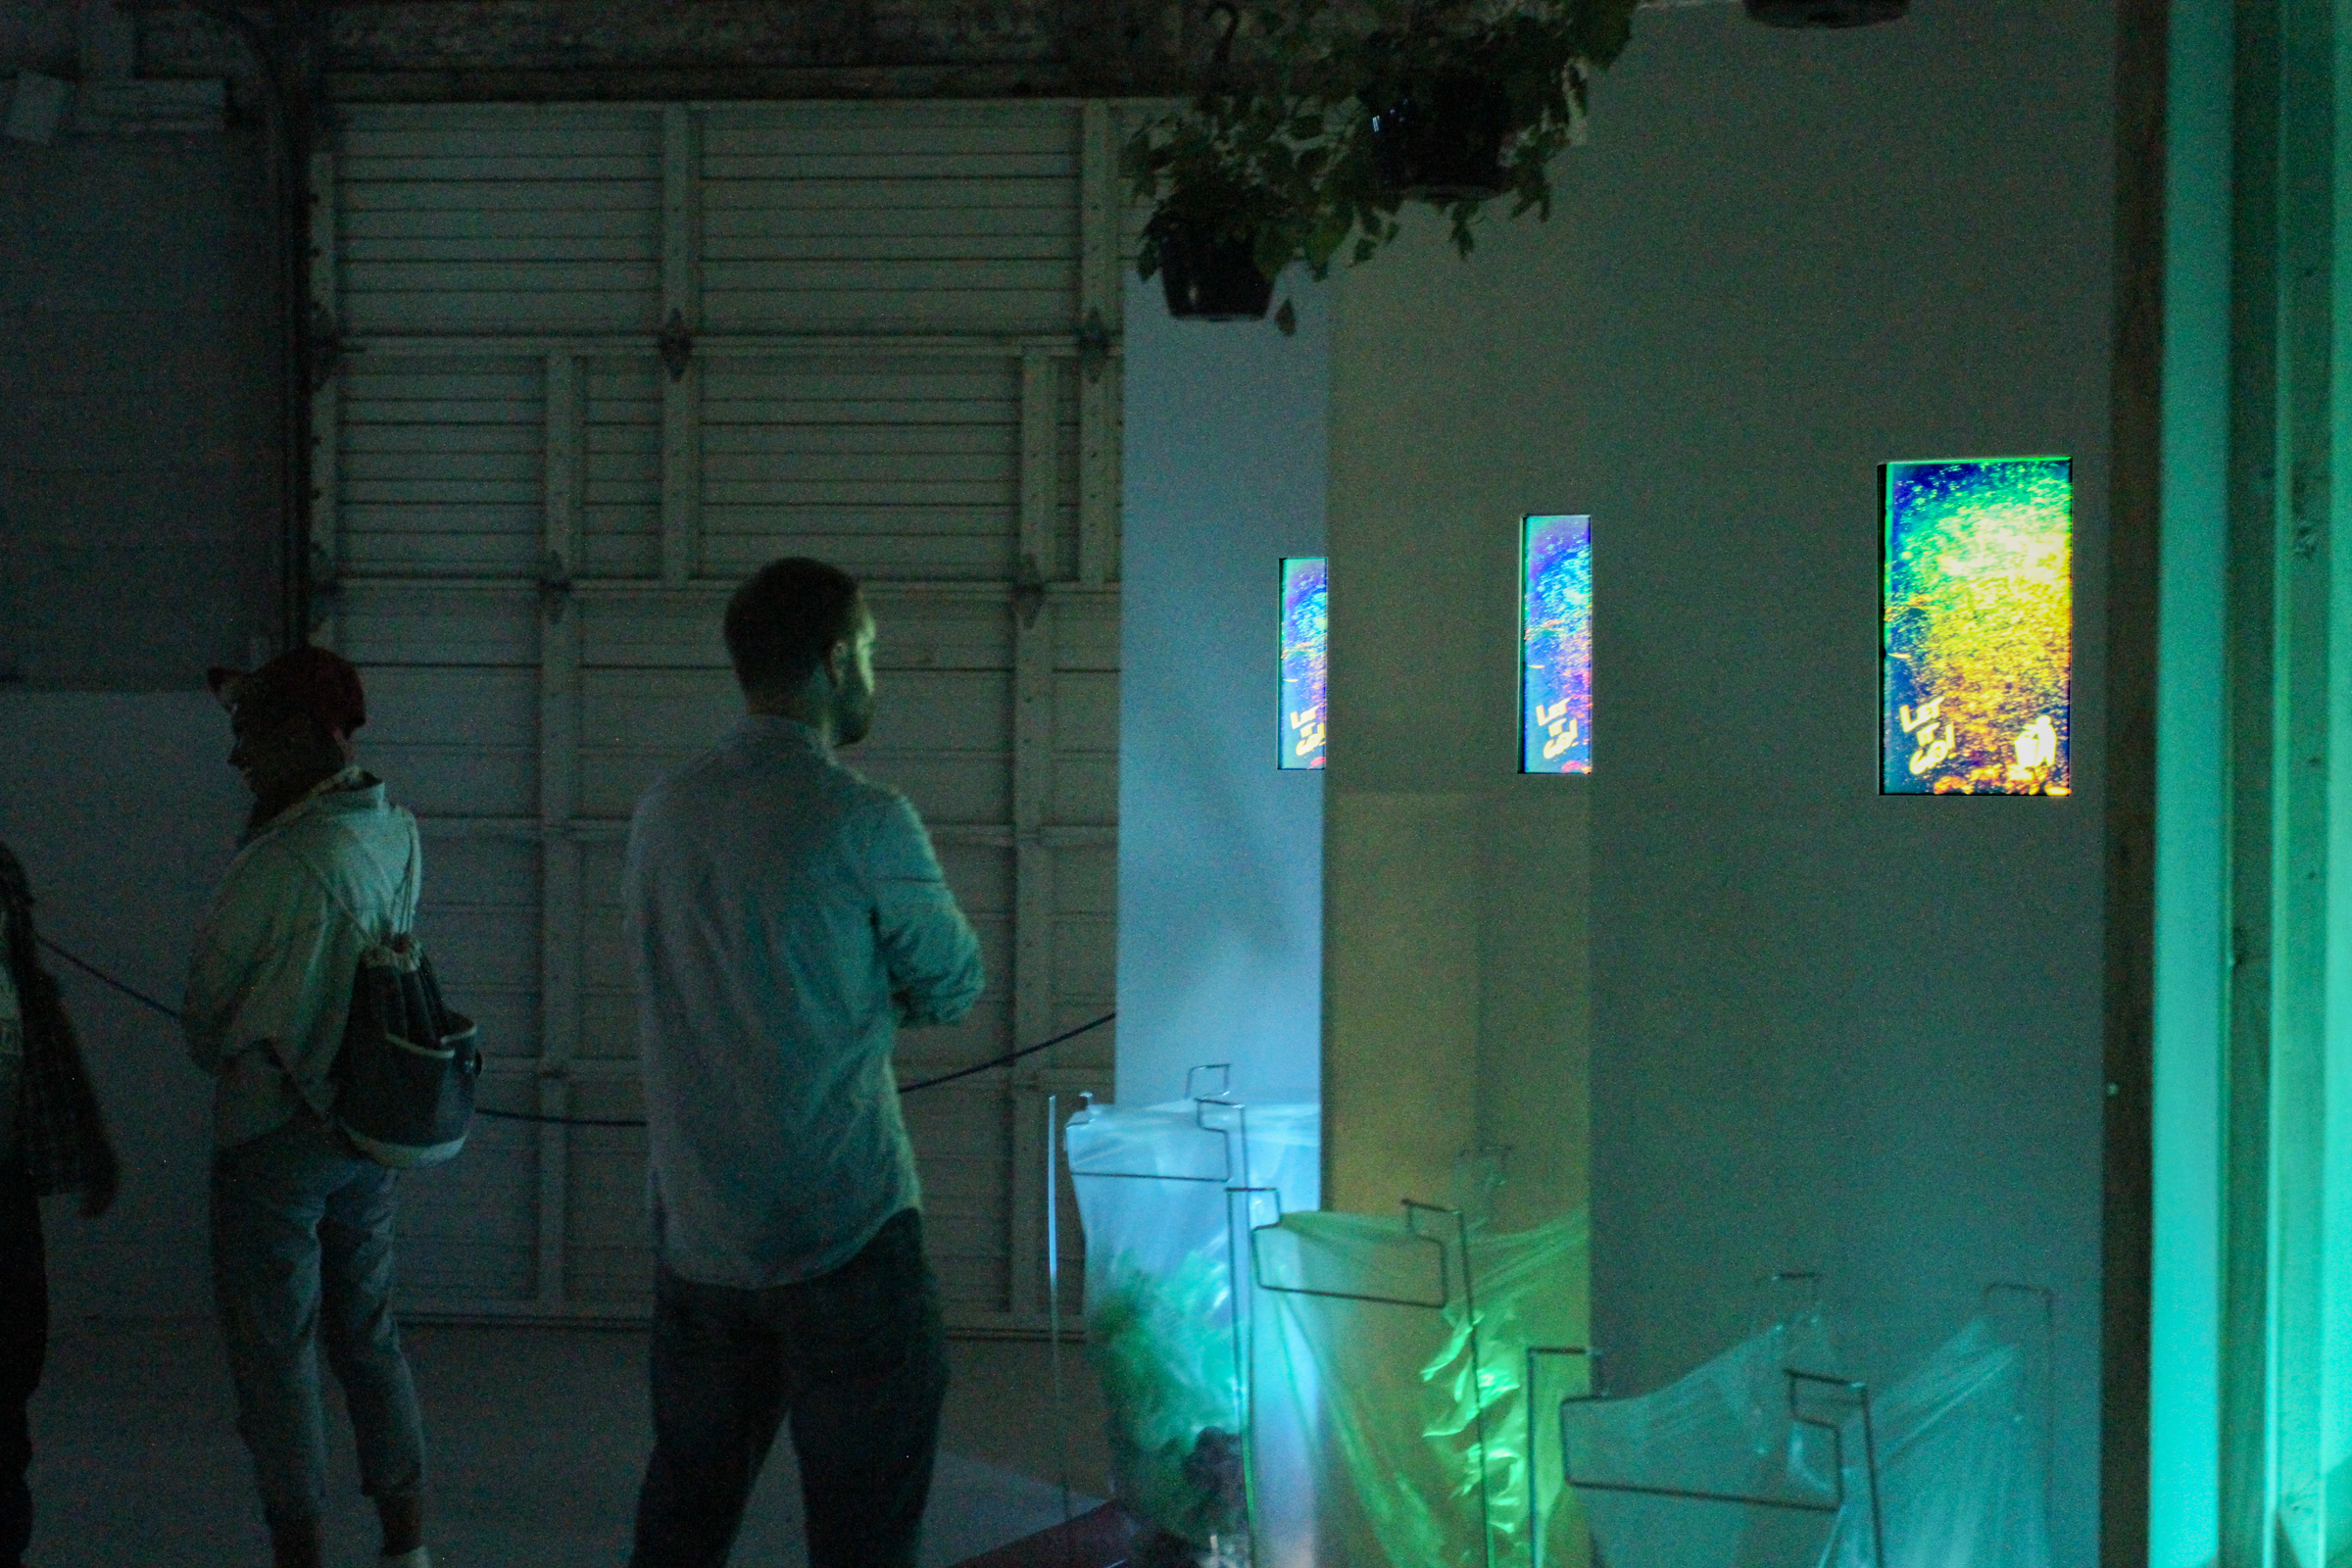 Shakedown   Dave Greber. 2016. Wood, GatorPlas, (3) flat screen monitors, HDMI media player, looped video (3:41m), speaker pendant and amplifier, (3) ivy plants, three lamps Dimensions: 15 x 5 x 8 feet